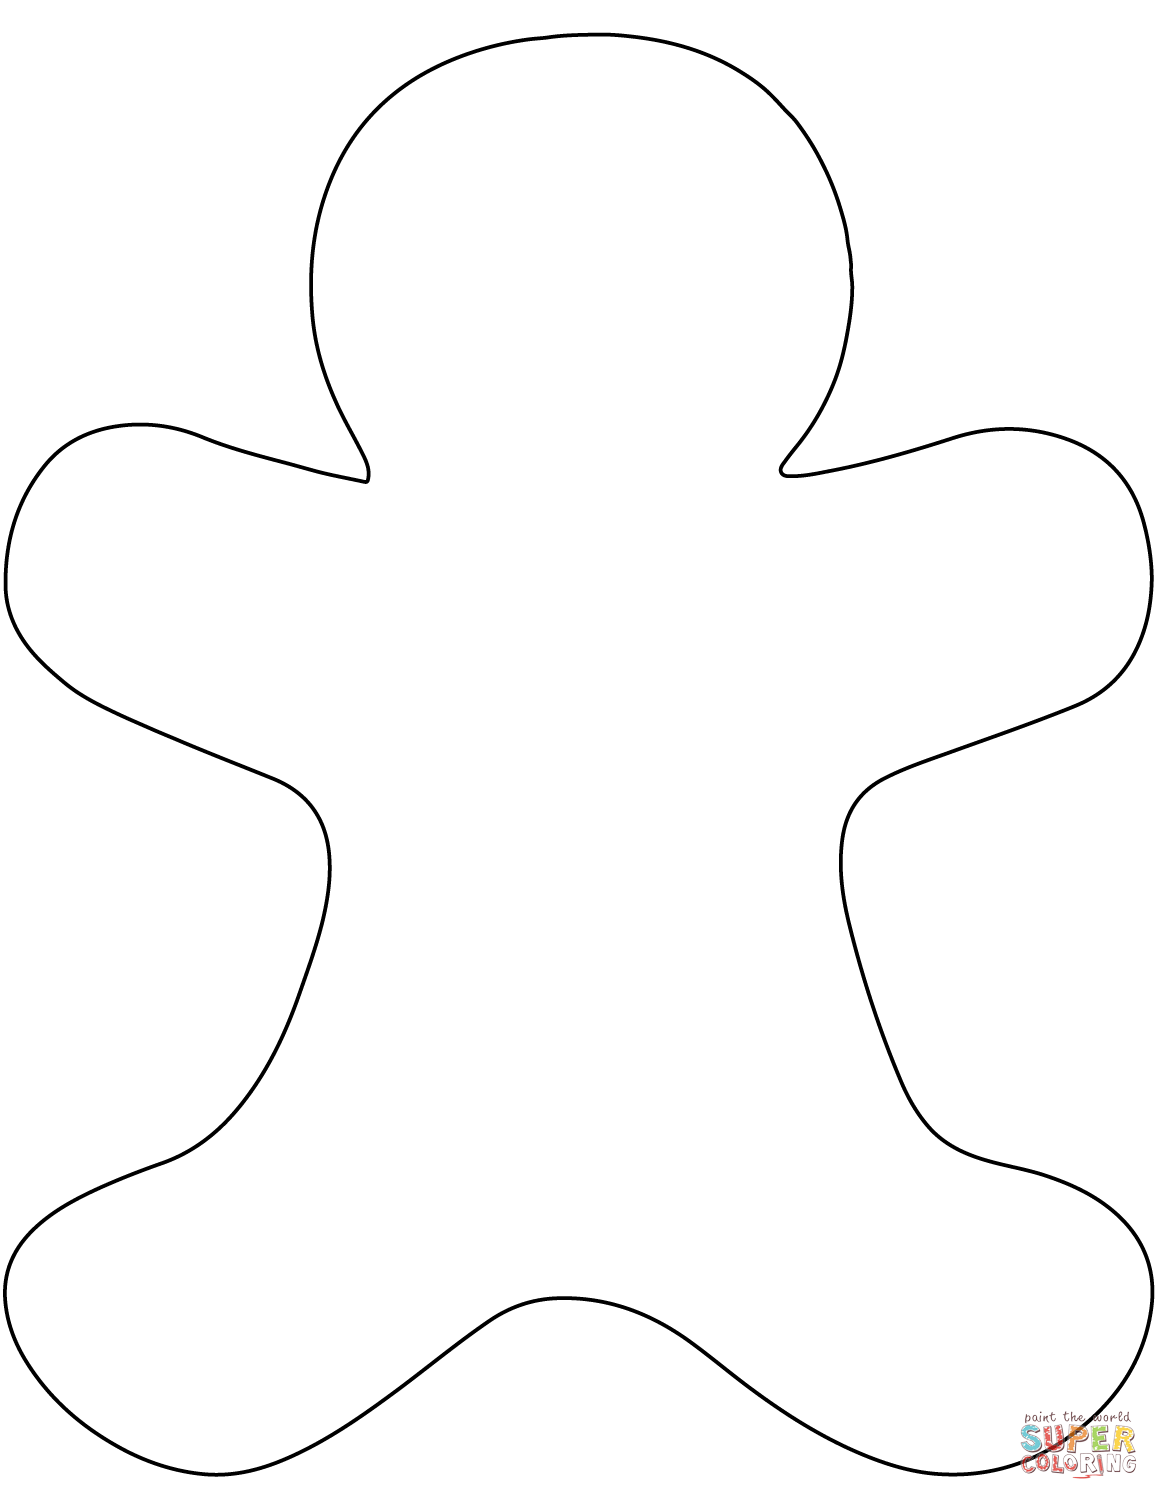 Blank Gingerbread Man Coloring Page From Christmas